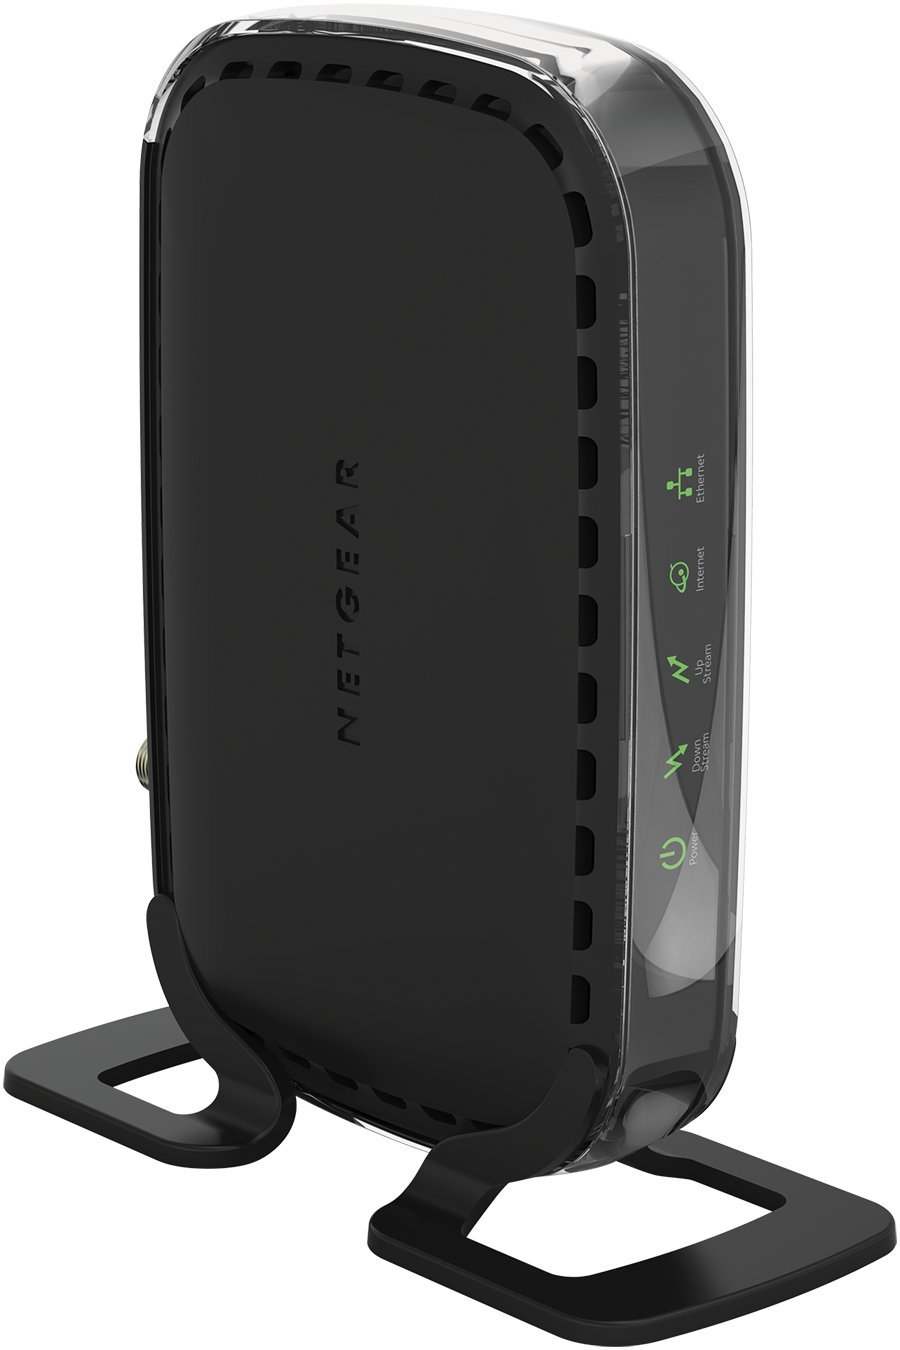 Amazon.com: NETGEAR Cable Modem 8x4 DOCSIS 3.0 (NO WIRELESS/MODEM ONLY)  Works for Xfinity from Comcast, Spectrum, Cox, Cablevision & More  (CM400-1AZNAS): ...